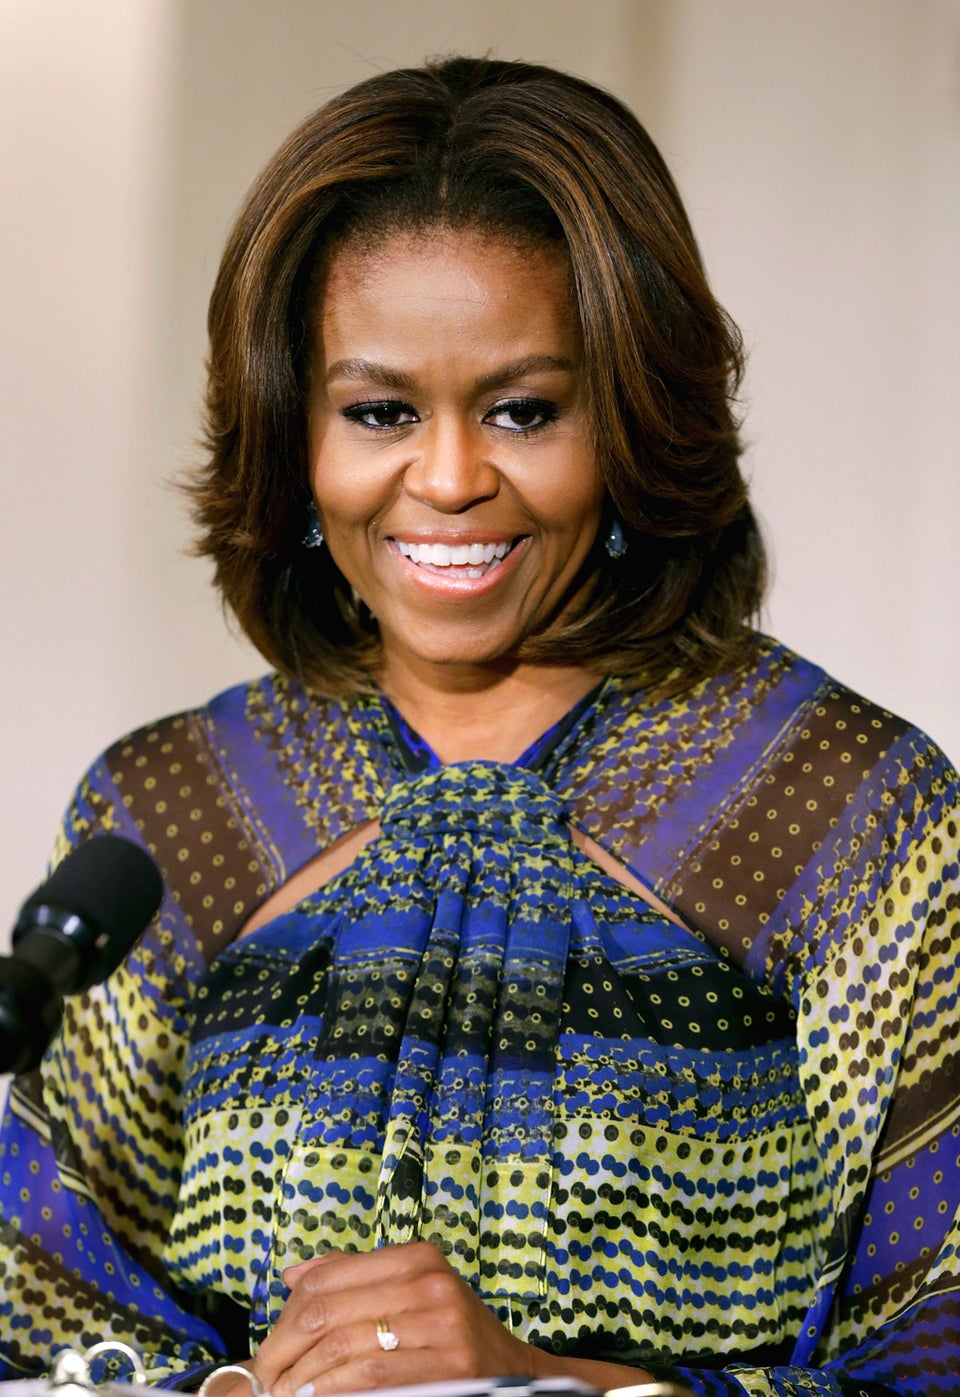 Must See: The First Lady Previews the Annual Easter Egg Roll in 90's Sitcom Style